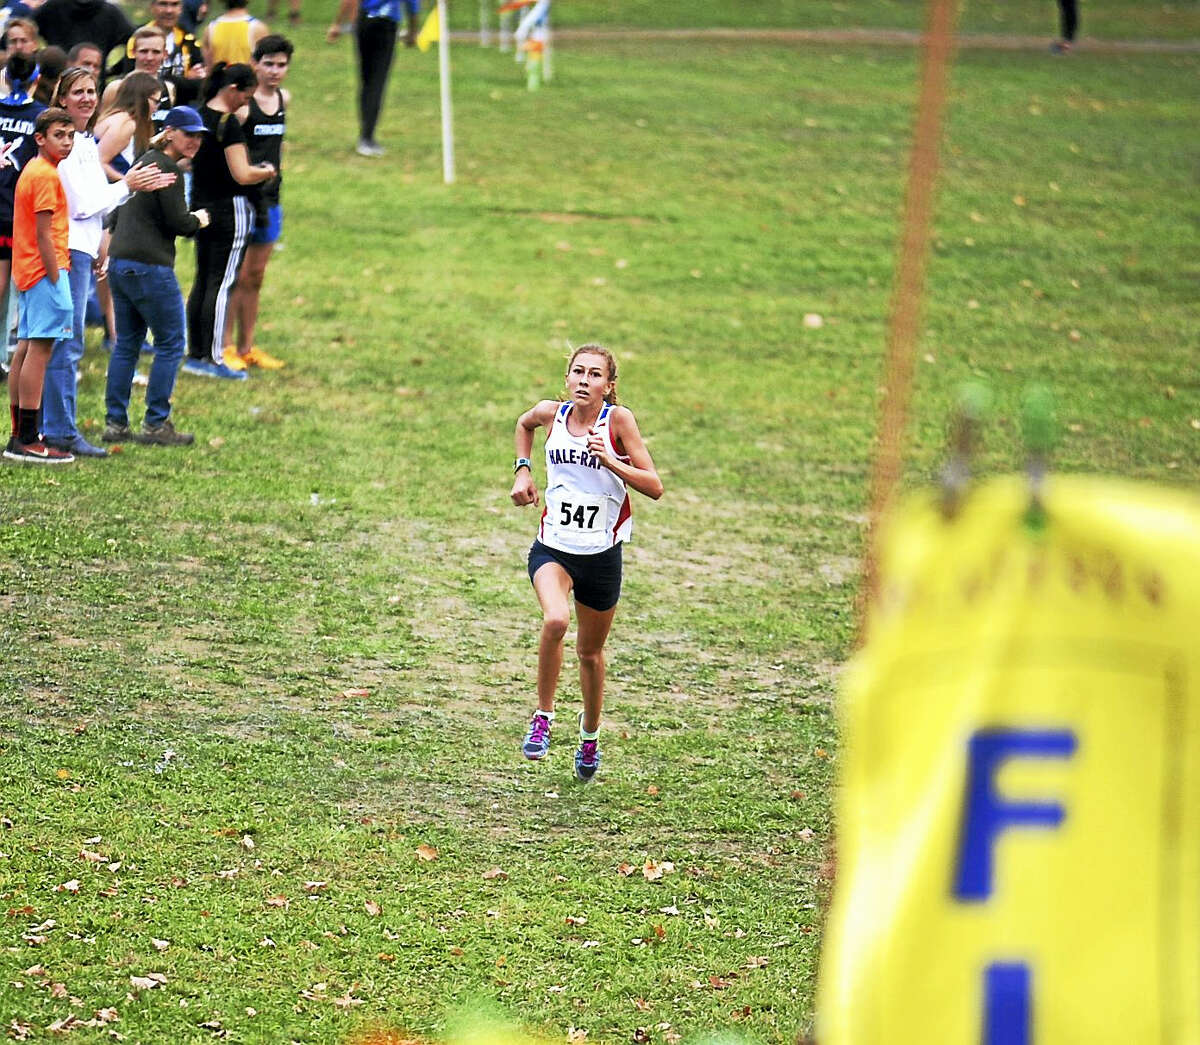 East Hampton's Emily Sienna is all alone as she approaches the finish line during the Shoreline Conference cross country championship meet.